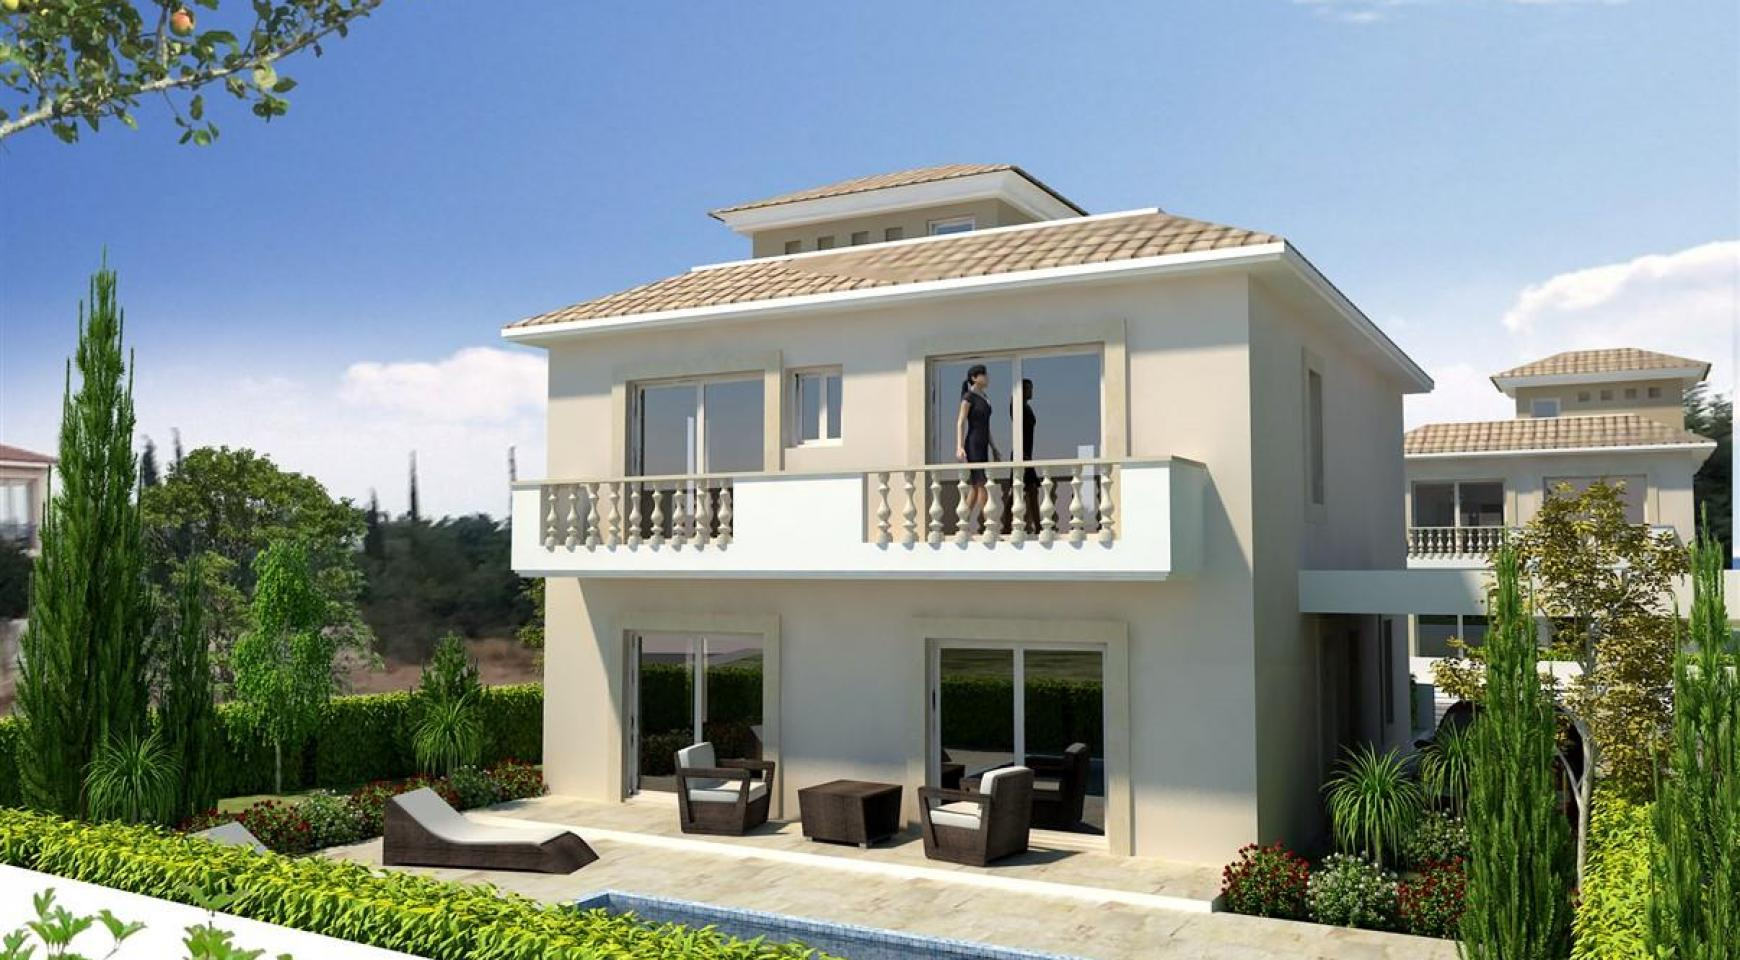 3 Bedroom Villa within a New Project - 9